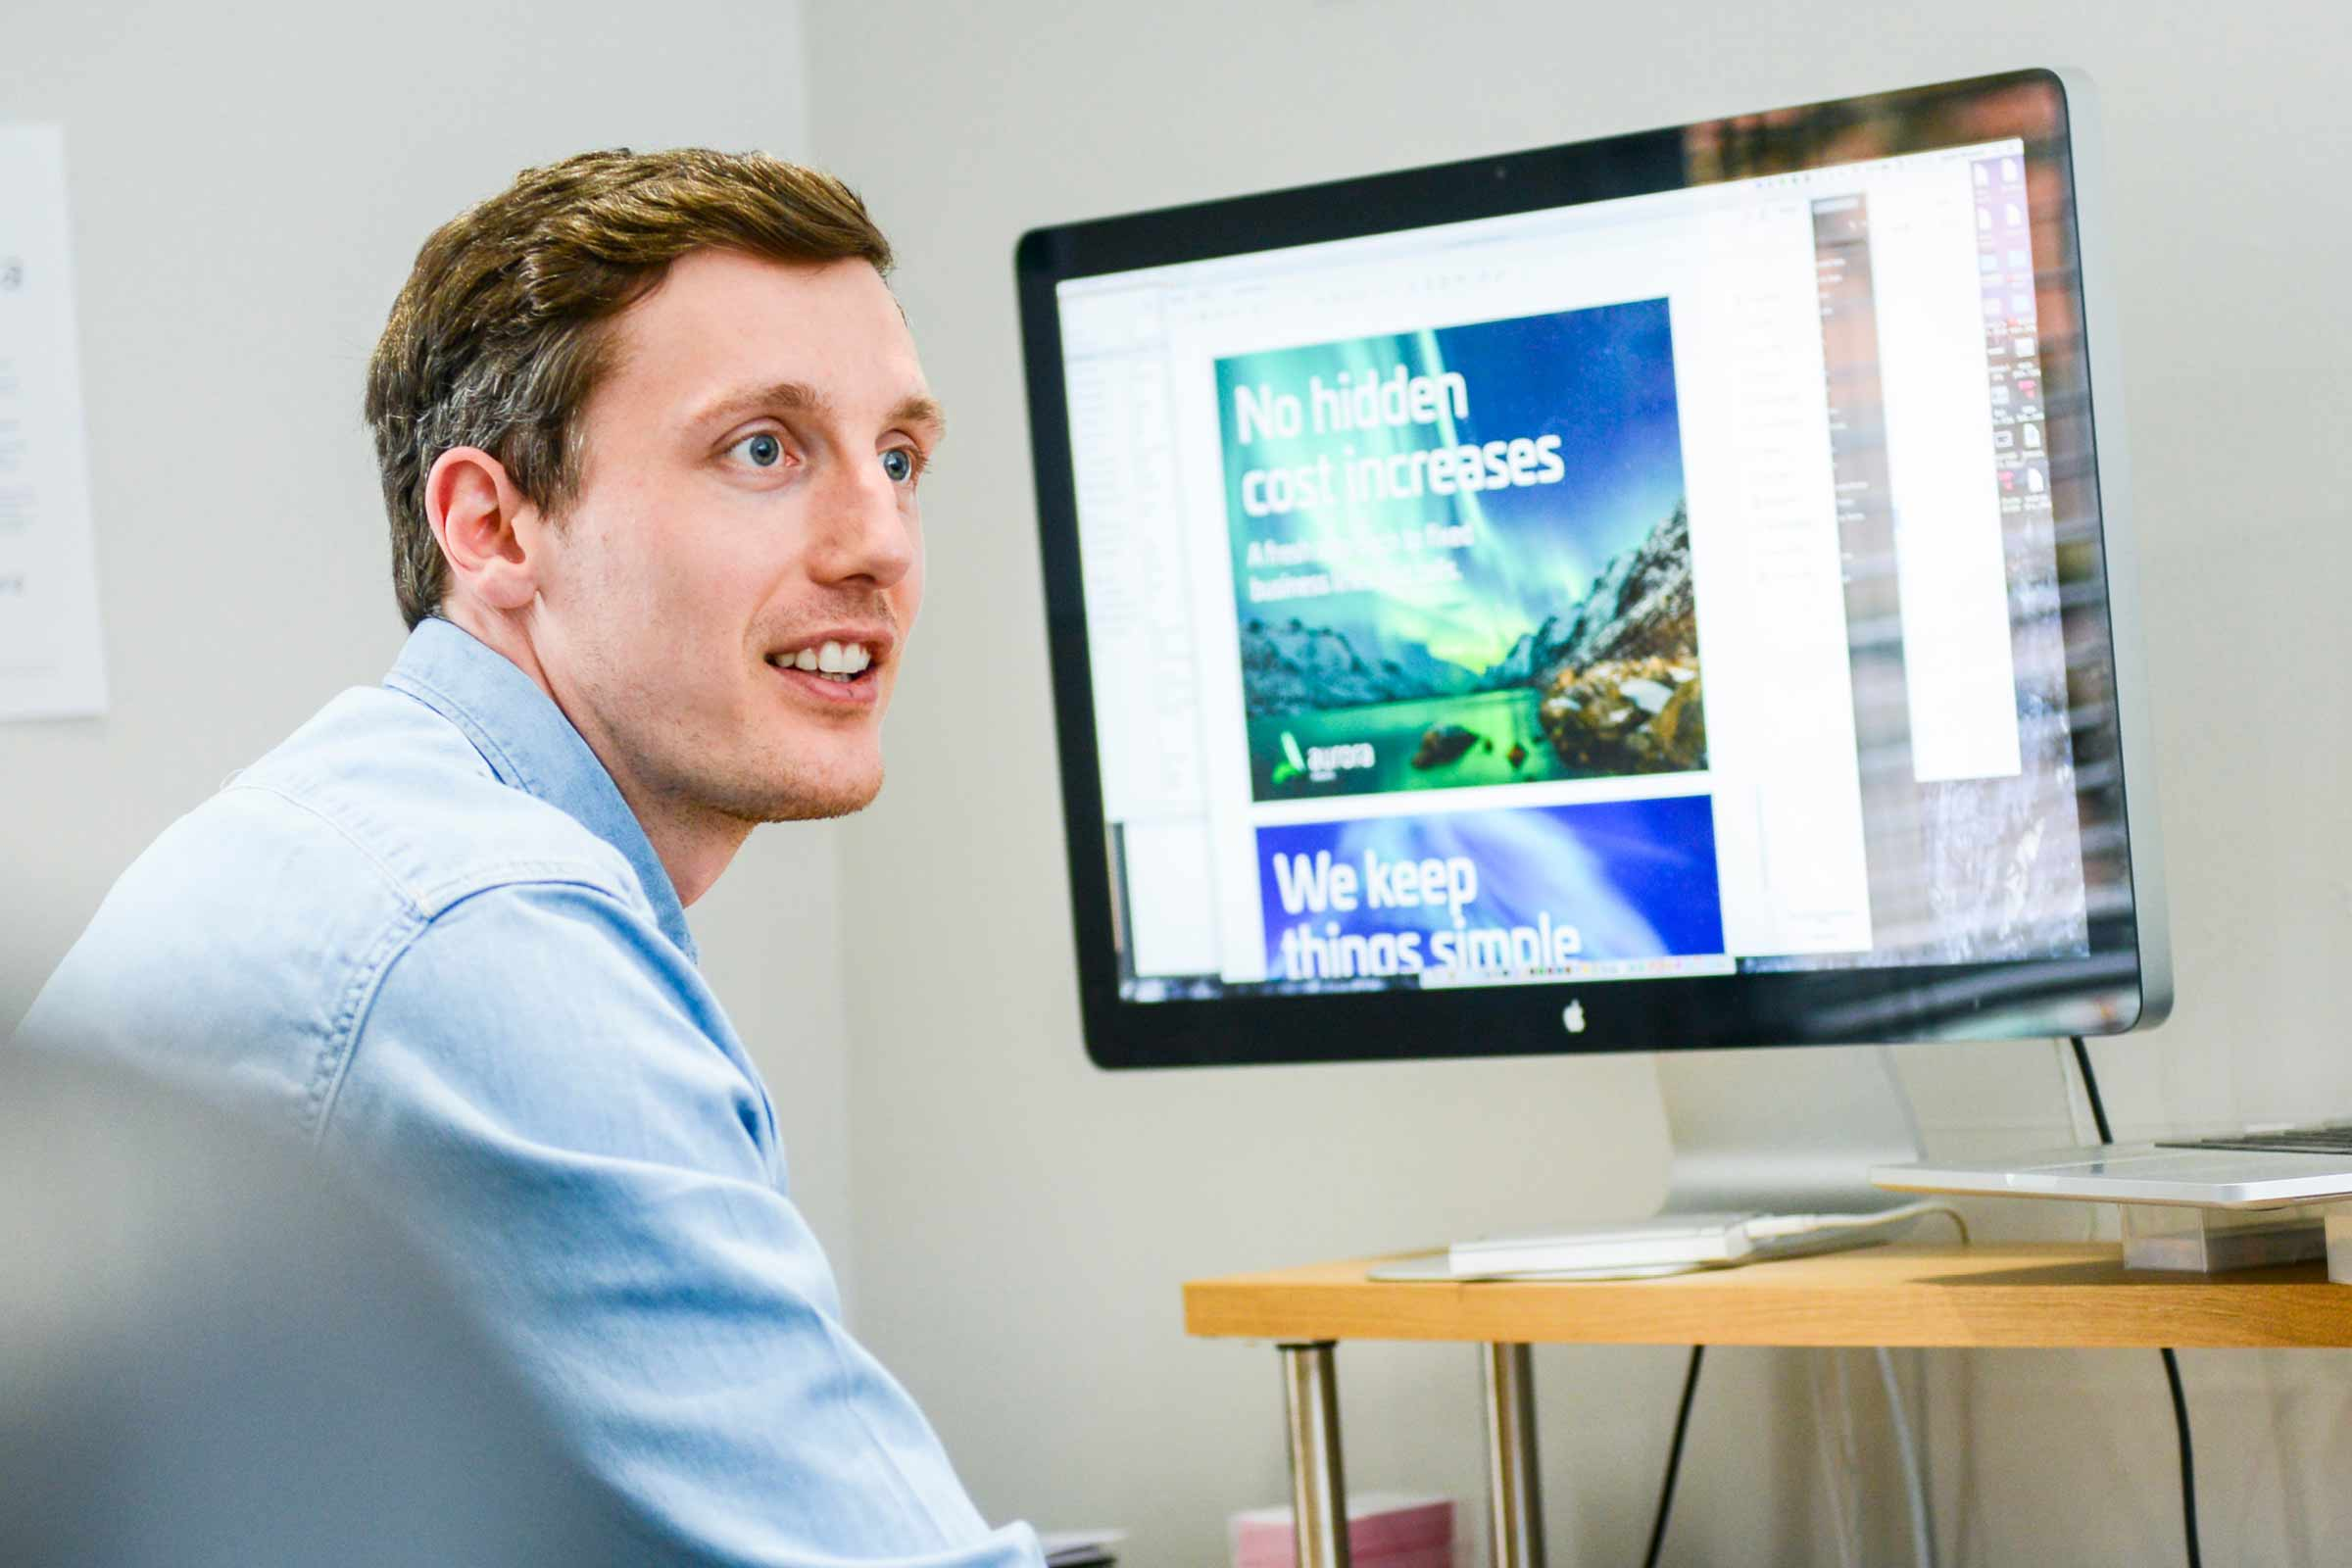 James Newland the Creative Director at Wider Design Agency in Solihull